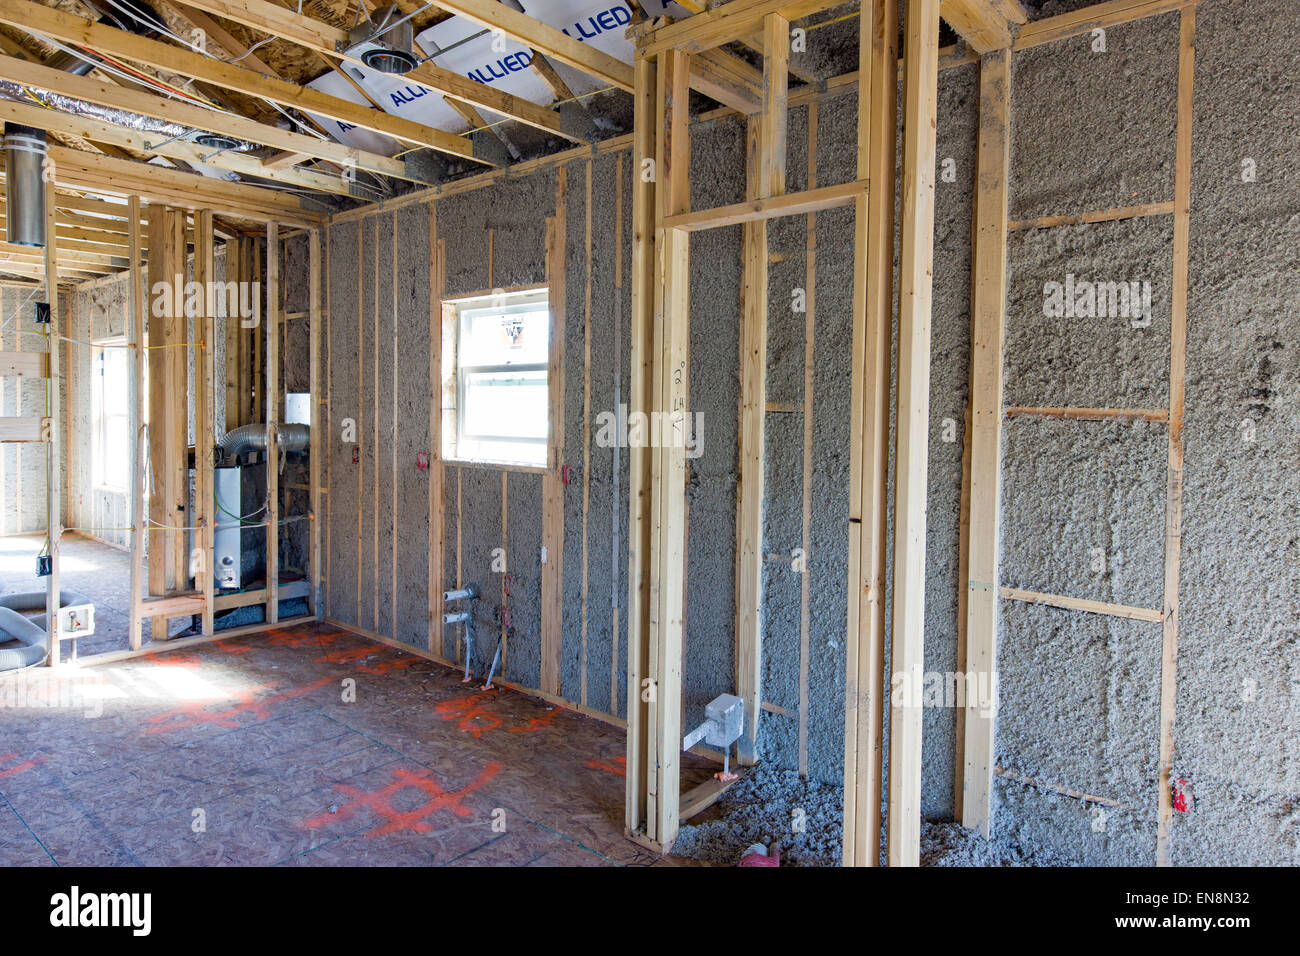 interior frame walls with blown in insulation construction of a craftsman style residential home in